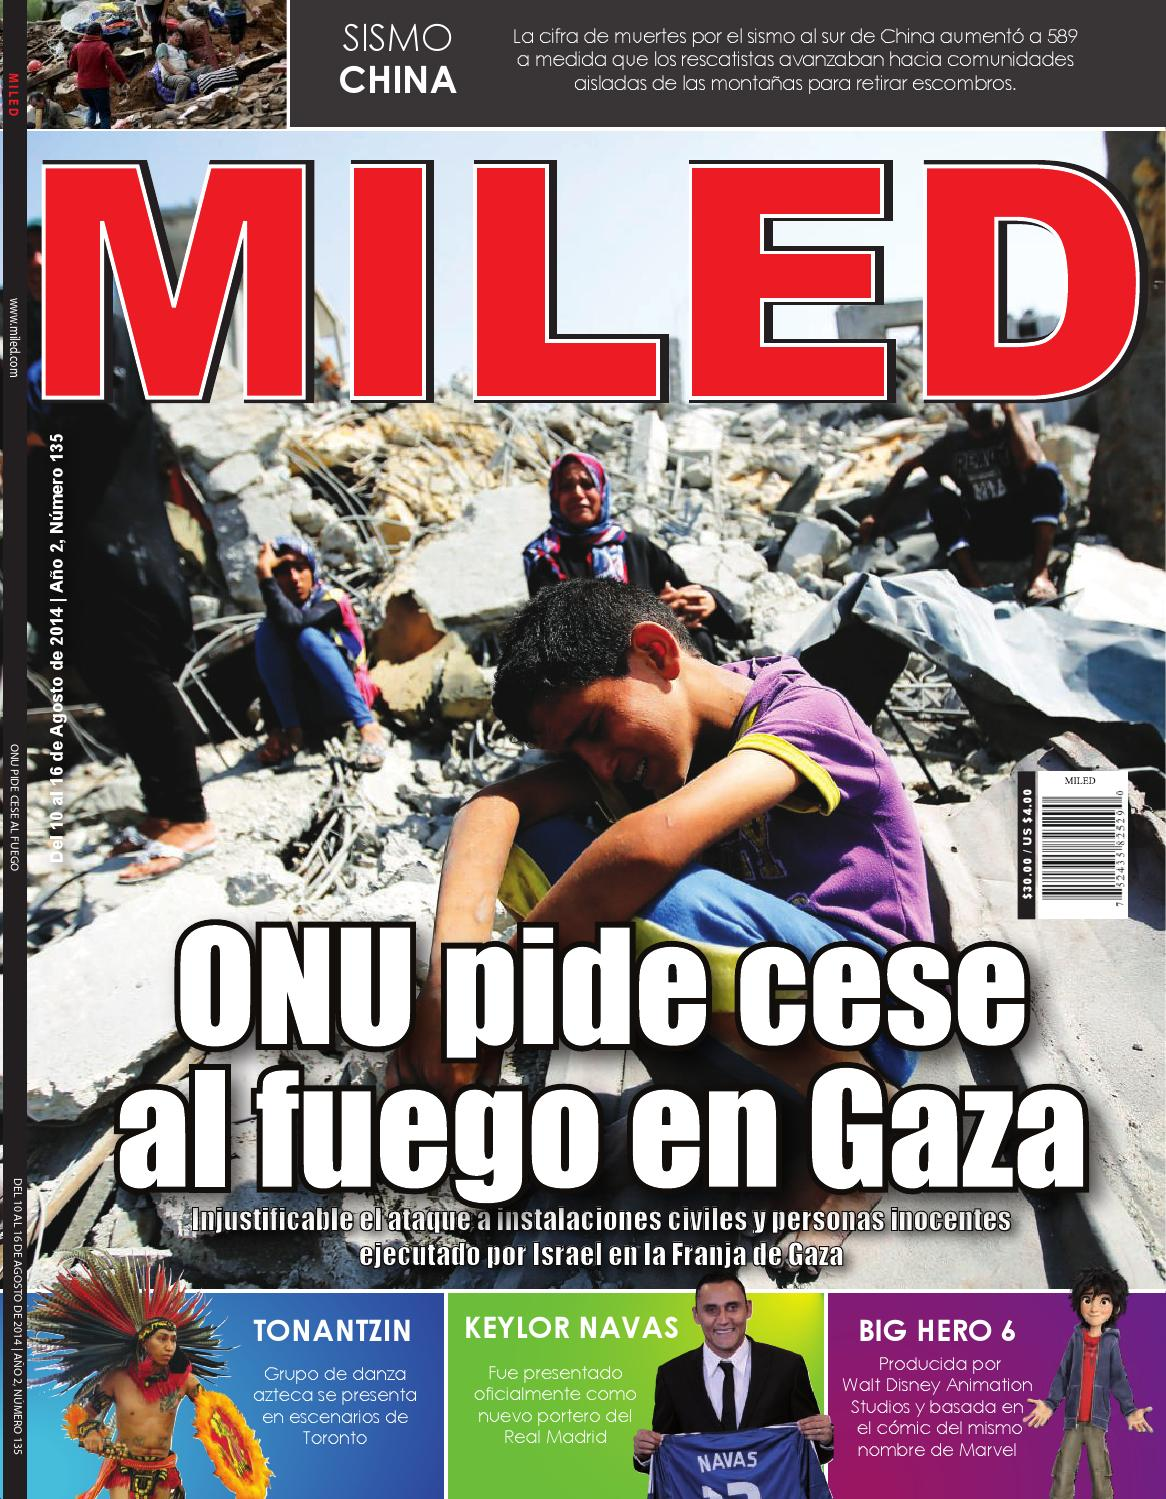 Revista Miled 10/08/2014 by Miled Revista - issuu